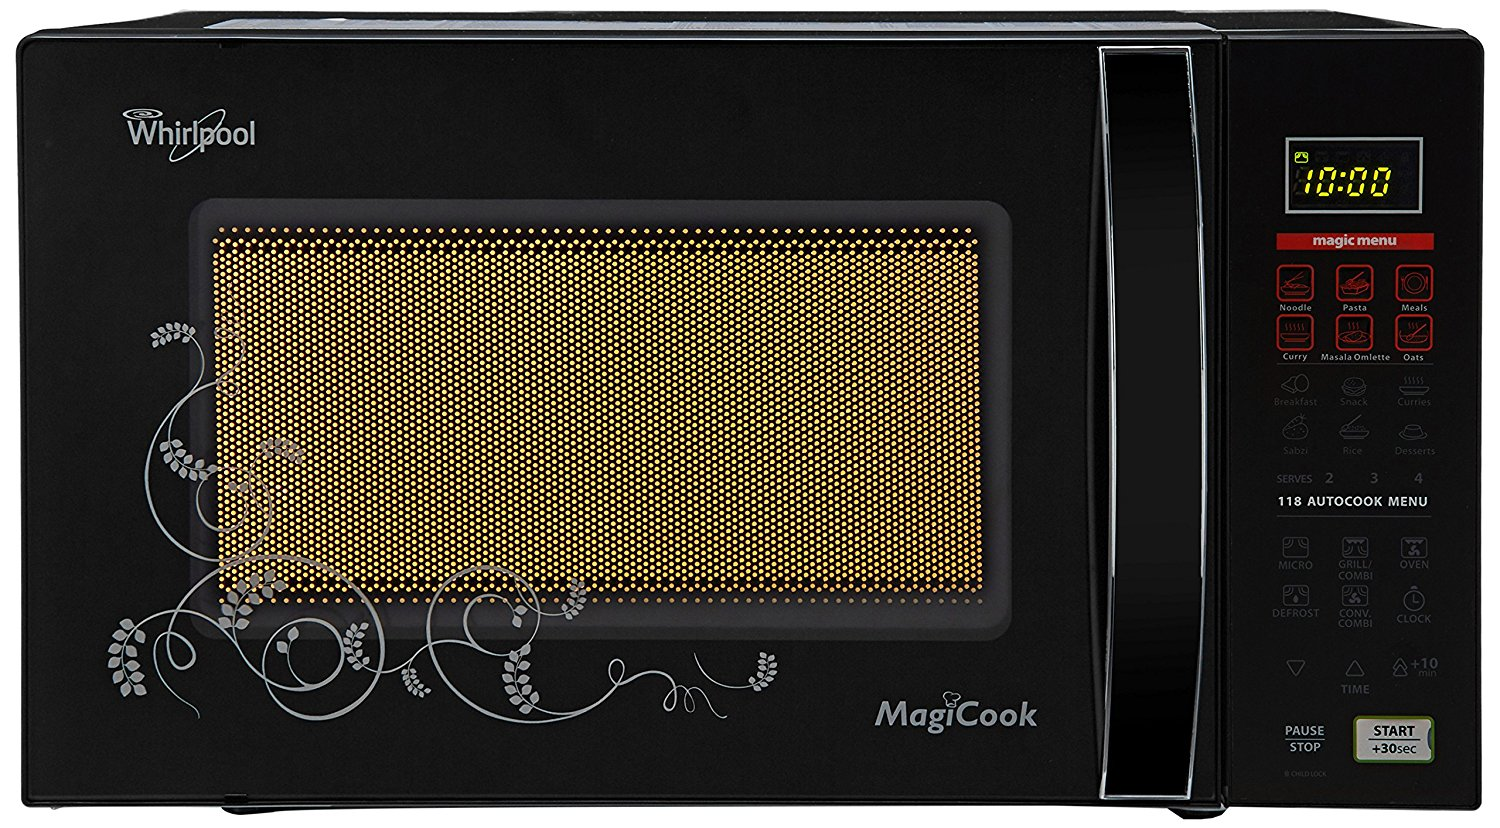 Whirlpool 20 L Convection Microwave Oven (Magicook Elite-20L, Solid Black)